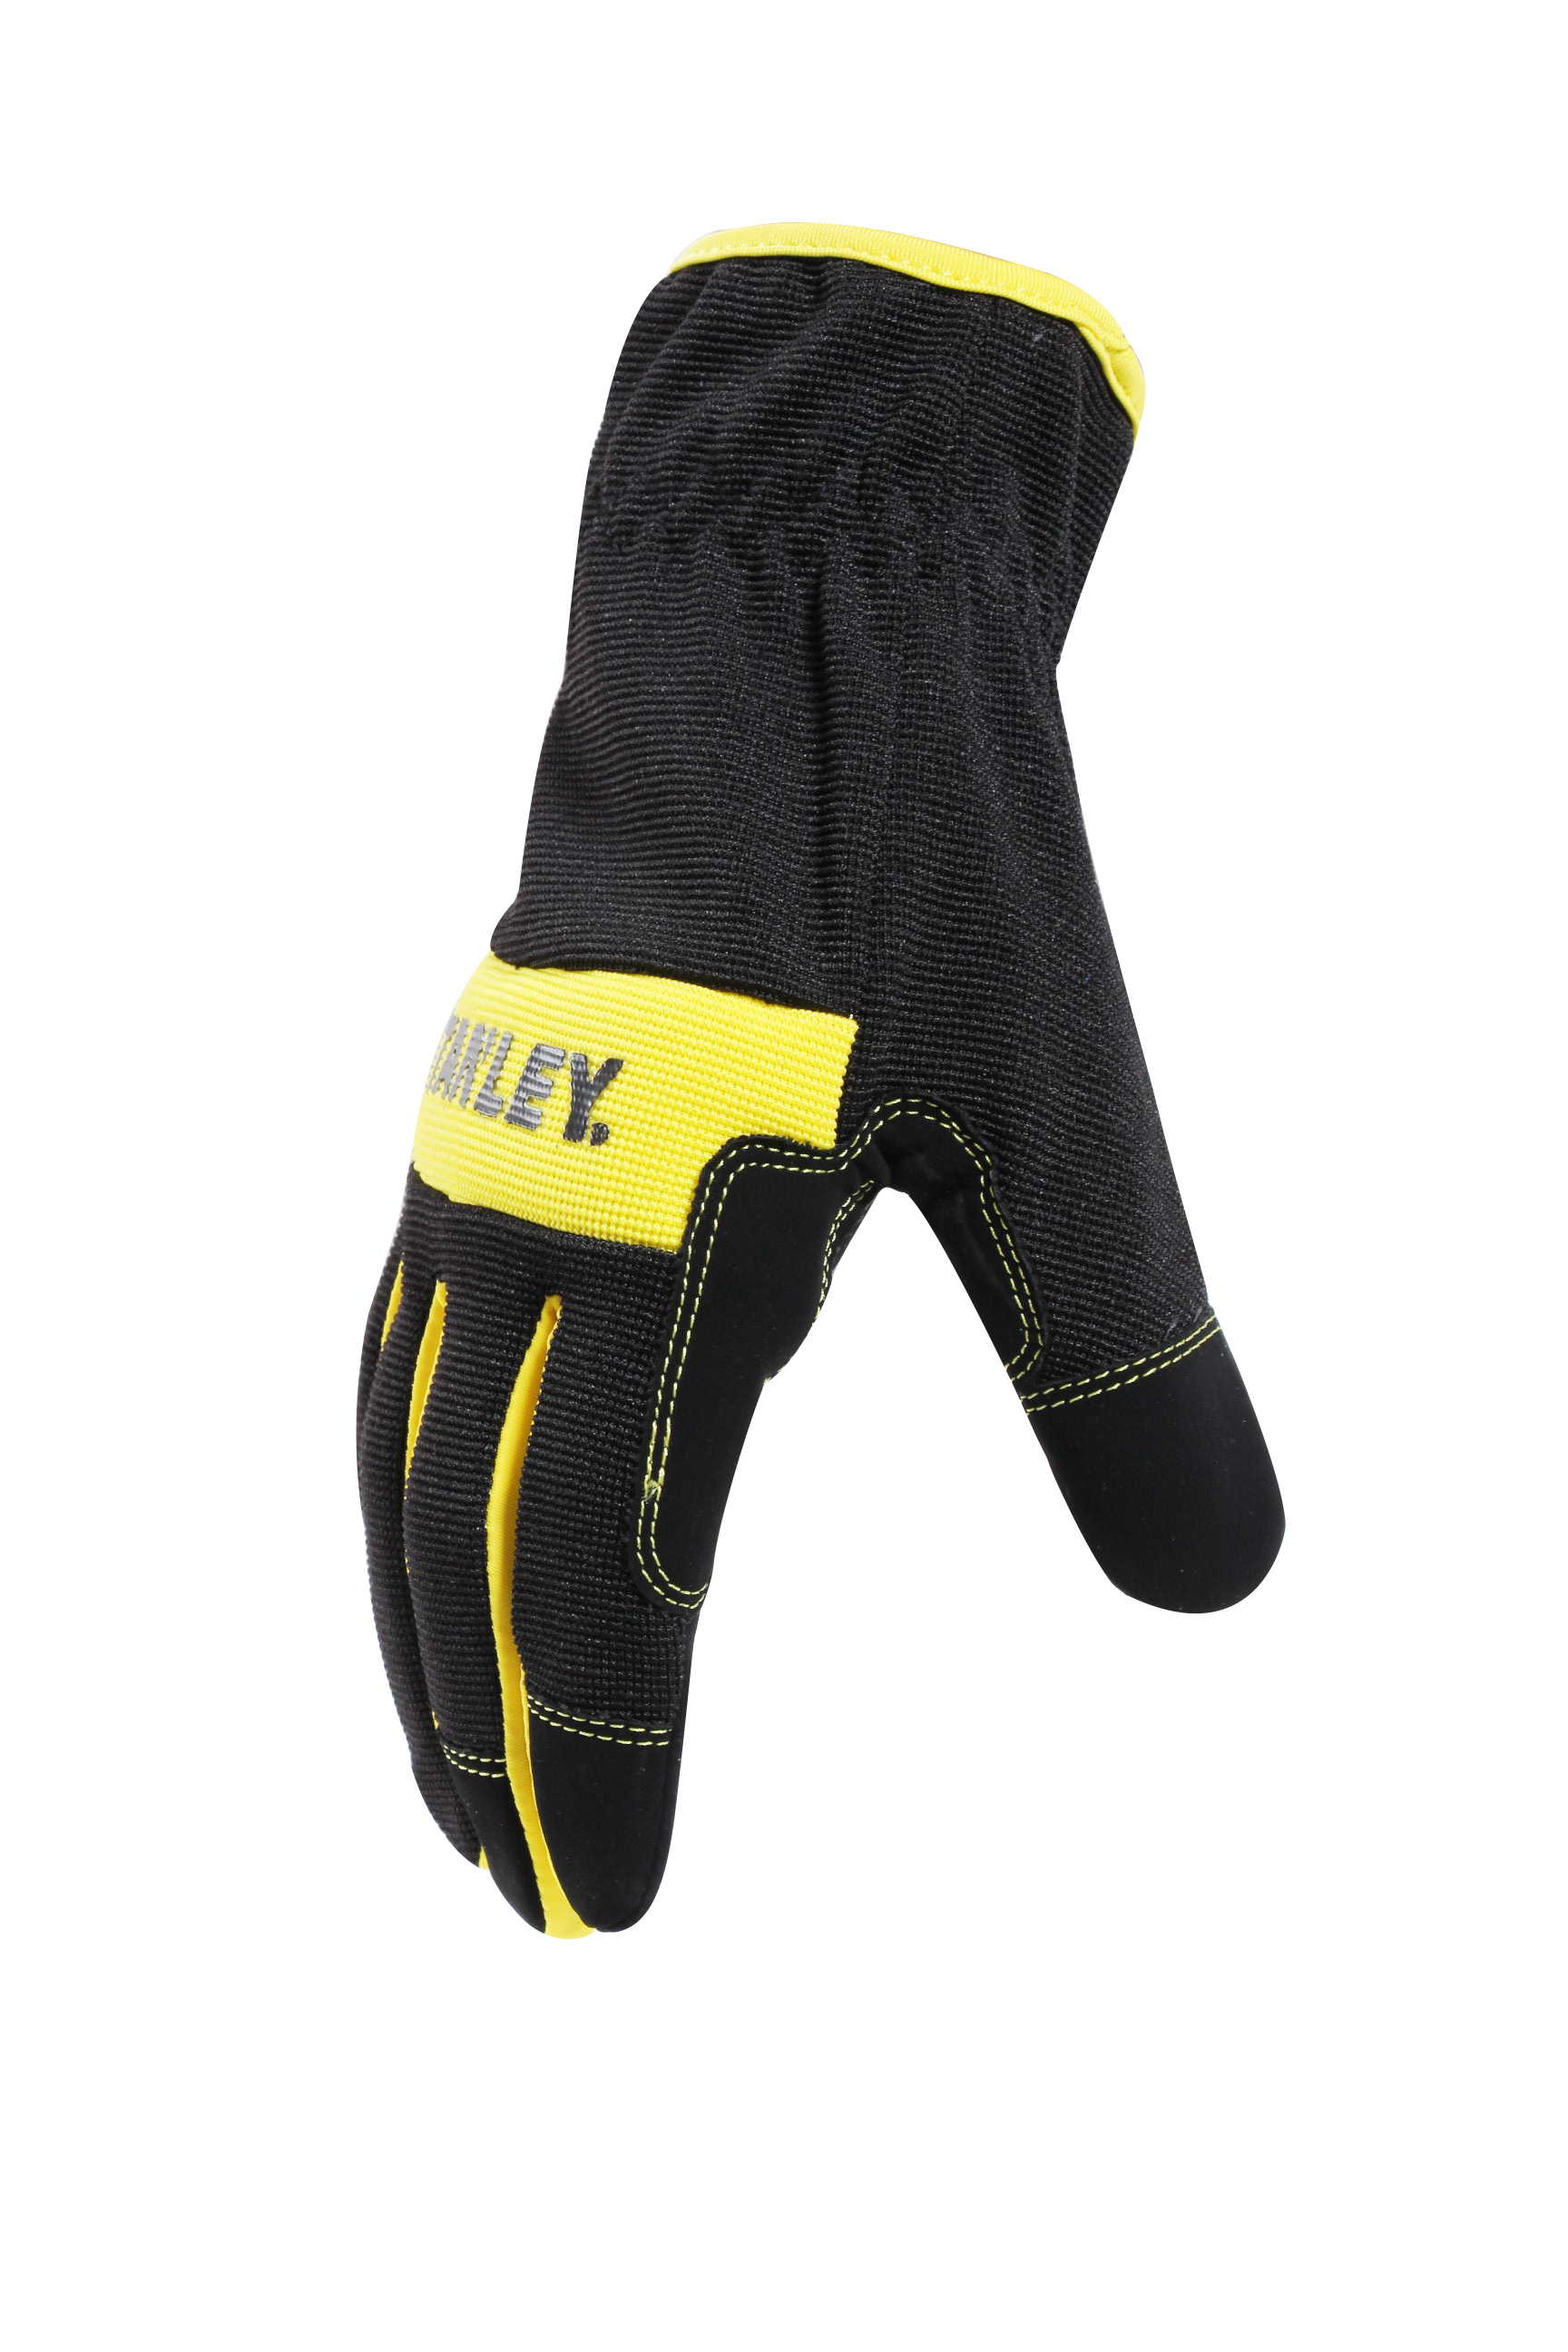 factory sale cycling gloves full finger